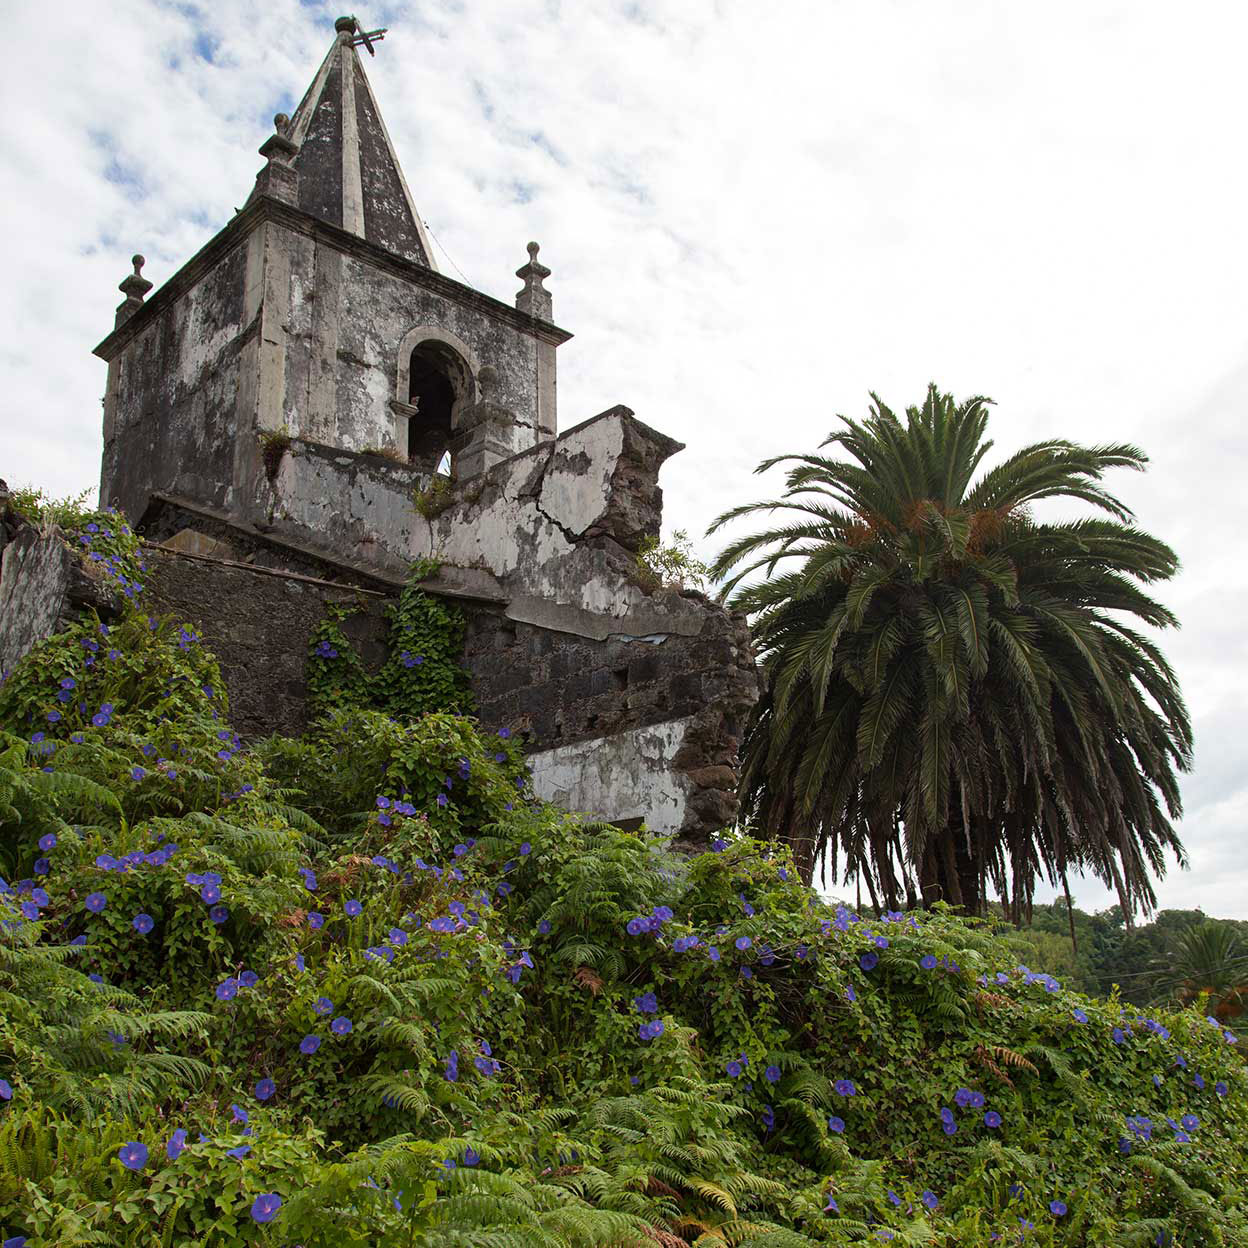 Pedro Miguel ruined church after the 1998 earthquake. Our Faial full day tour will take us all around